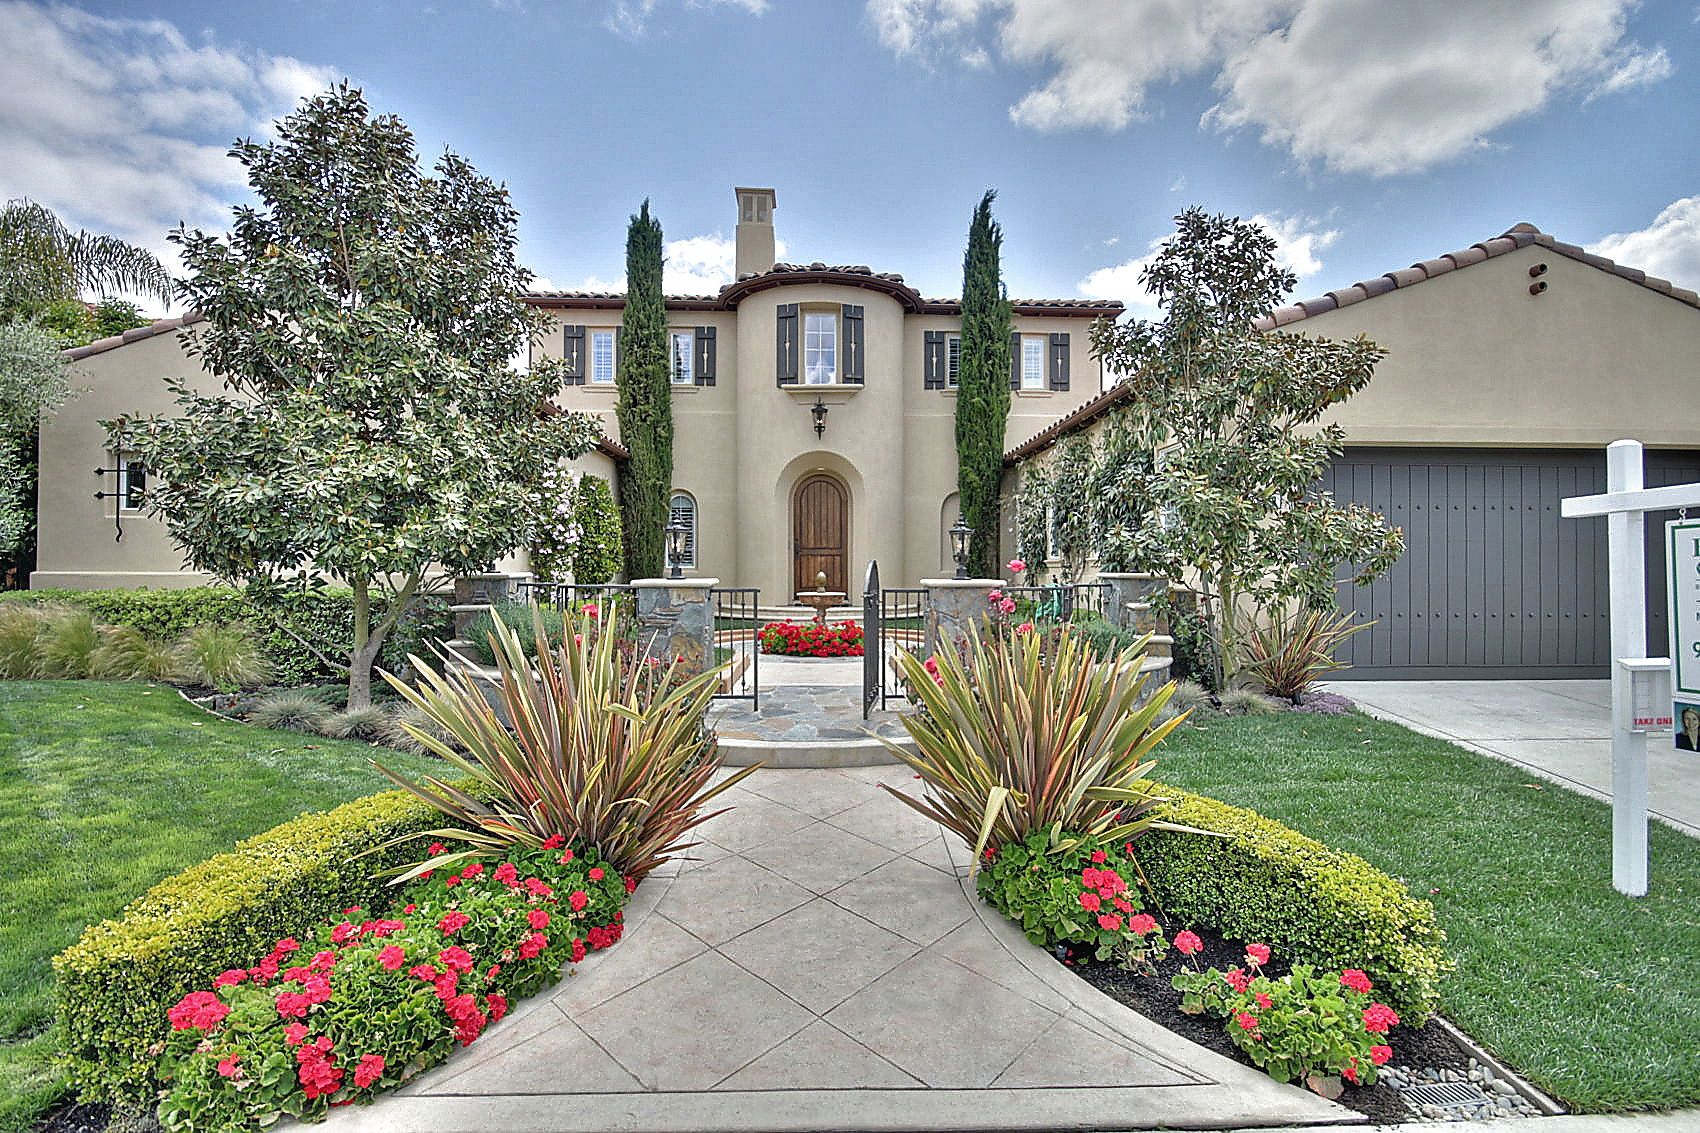 Luxurious Home High End Landscape Italian Cypress Trees